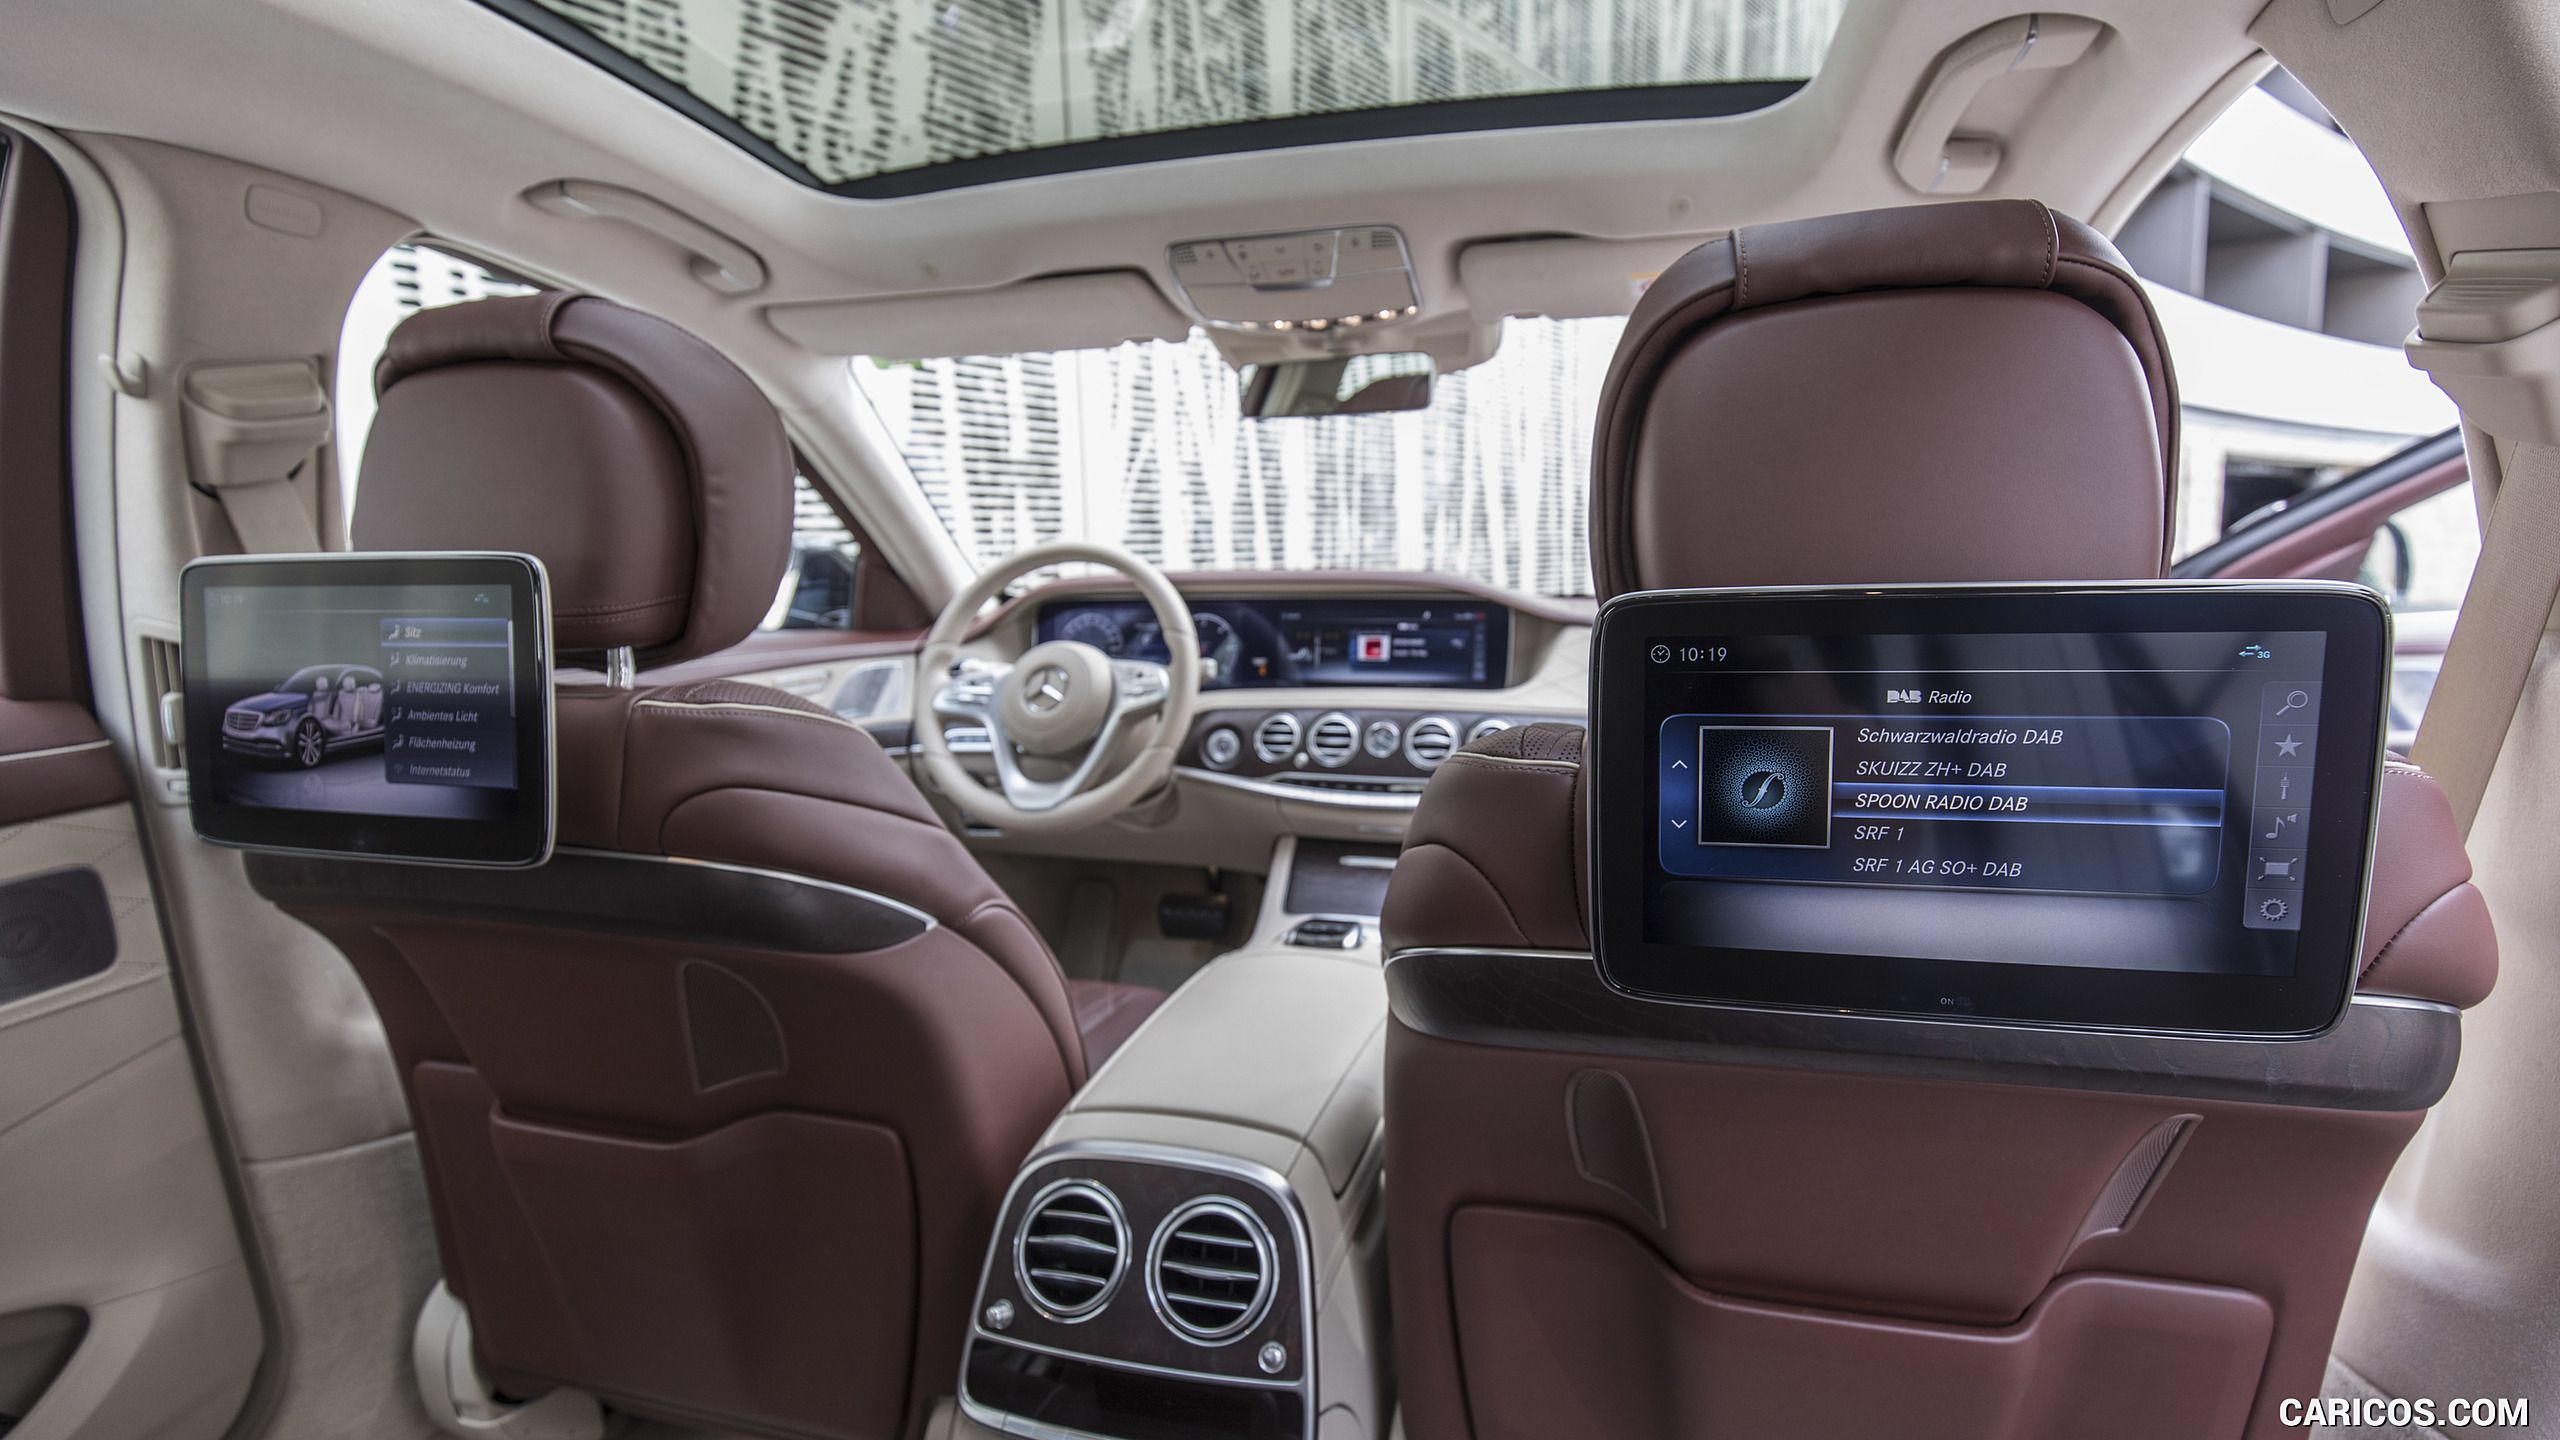 Pin By Adrian Lopez On Luxury Cars Benz S Class Mercedes Benz